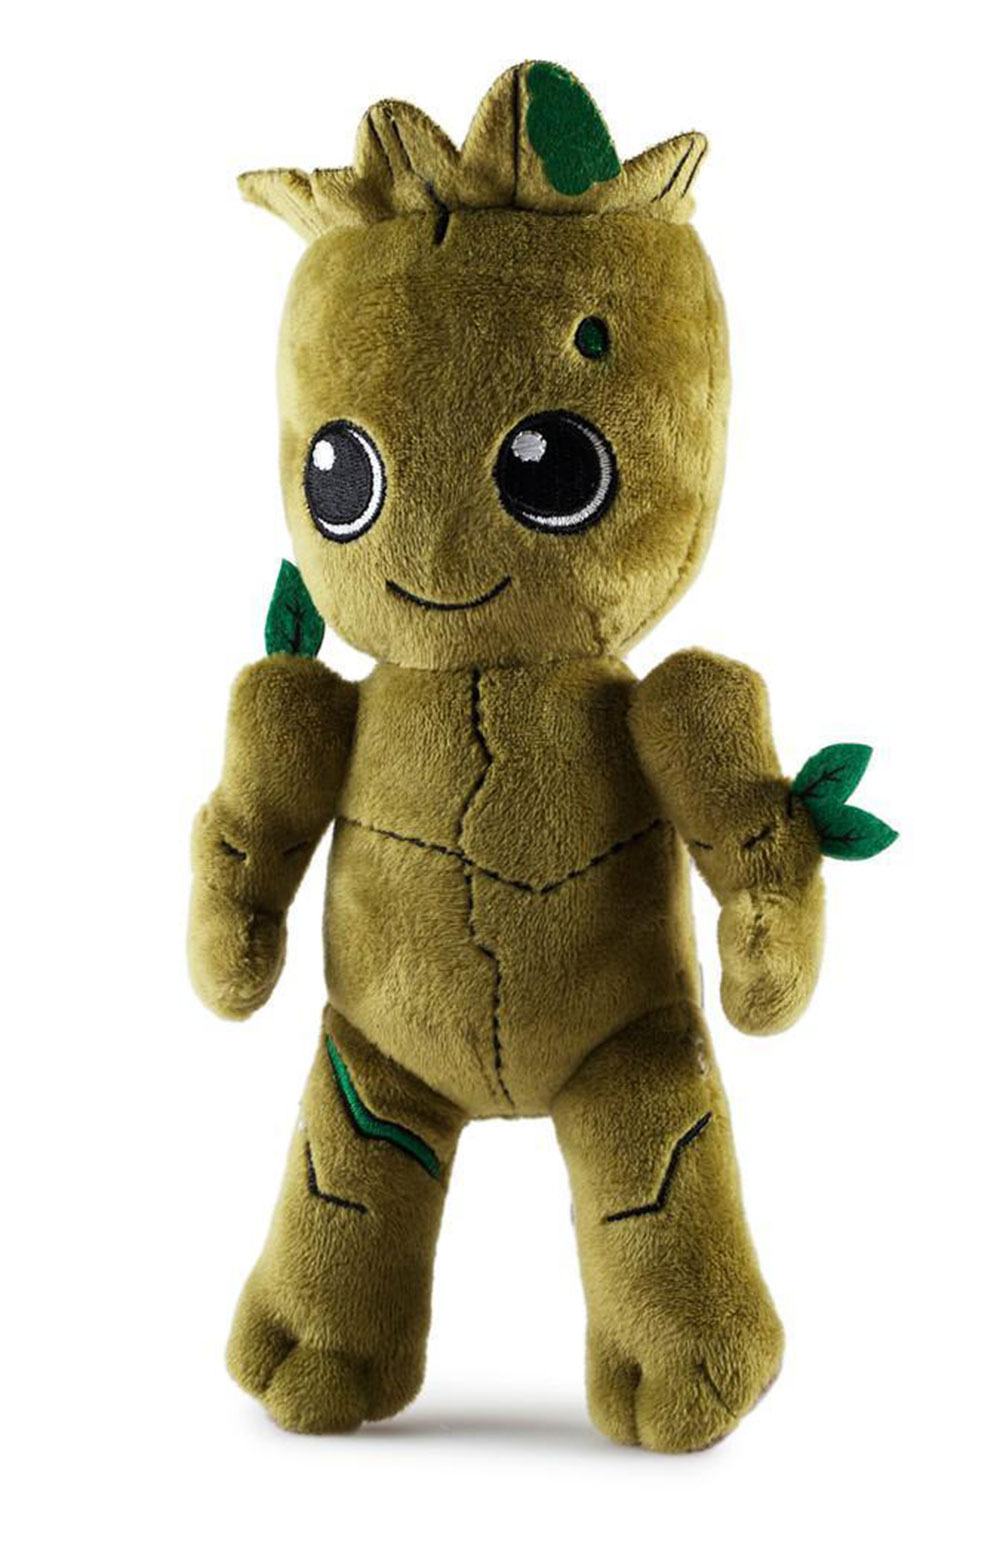 Baby Groot Plush Toy